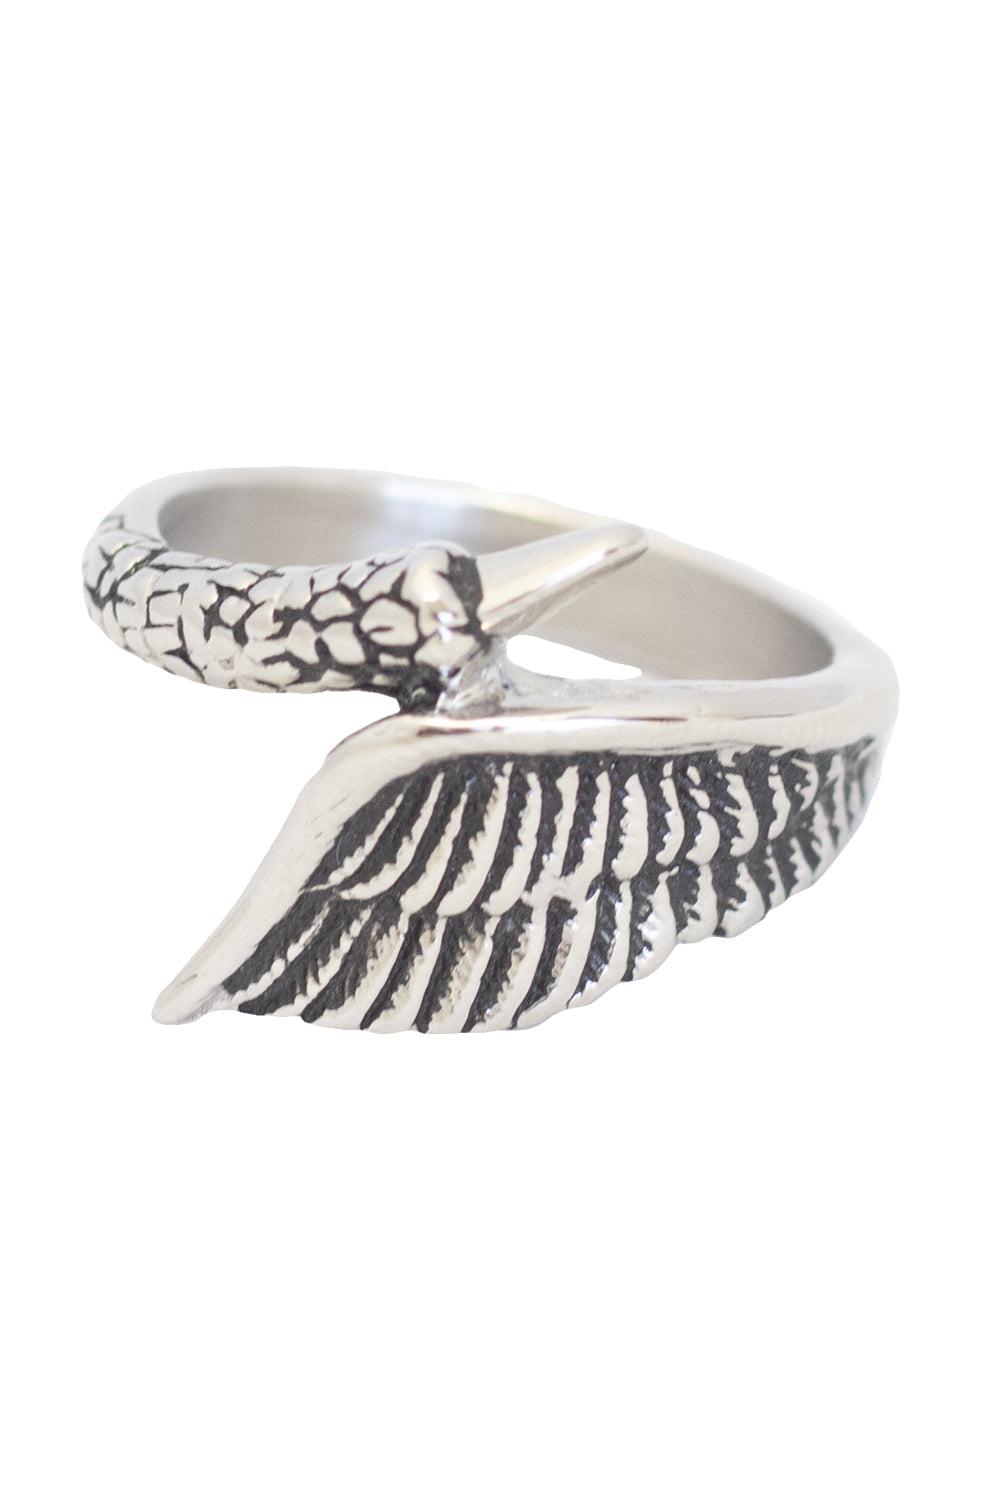 Swan Wing Ring - 4 LEFT ONLY